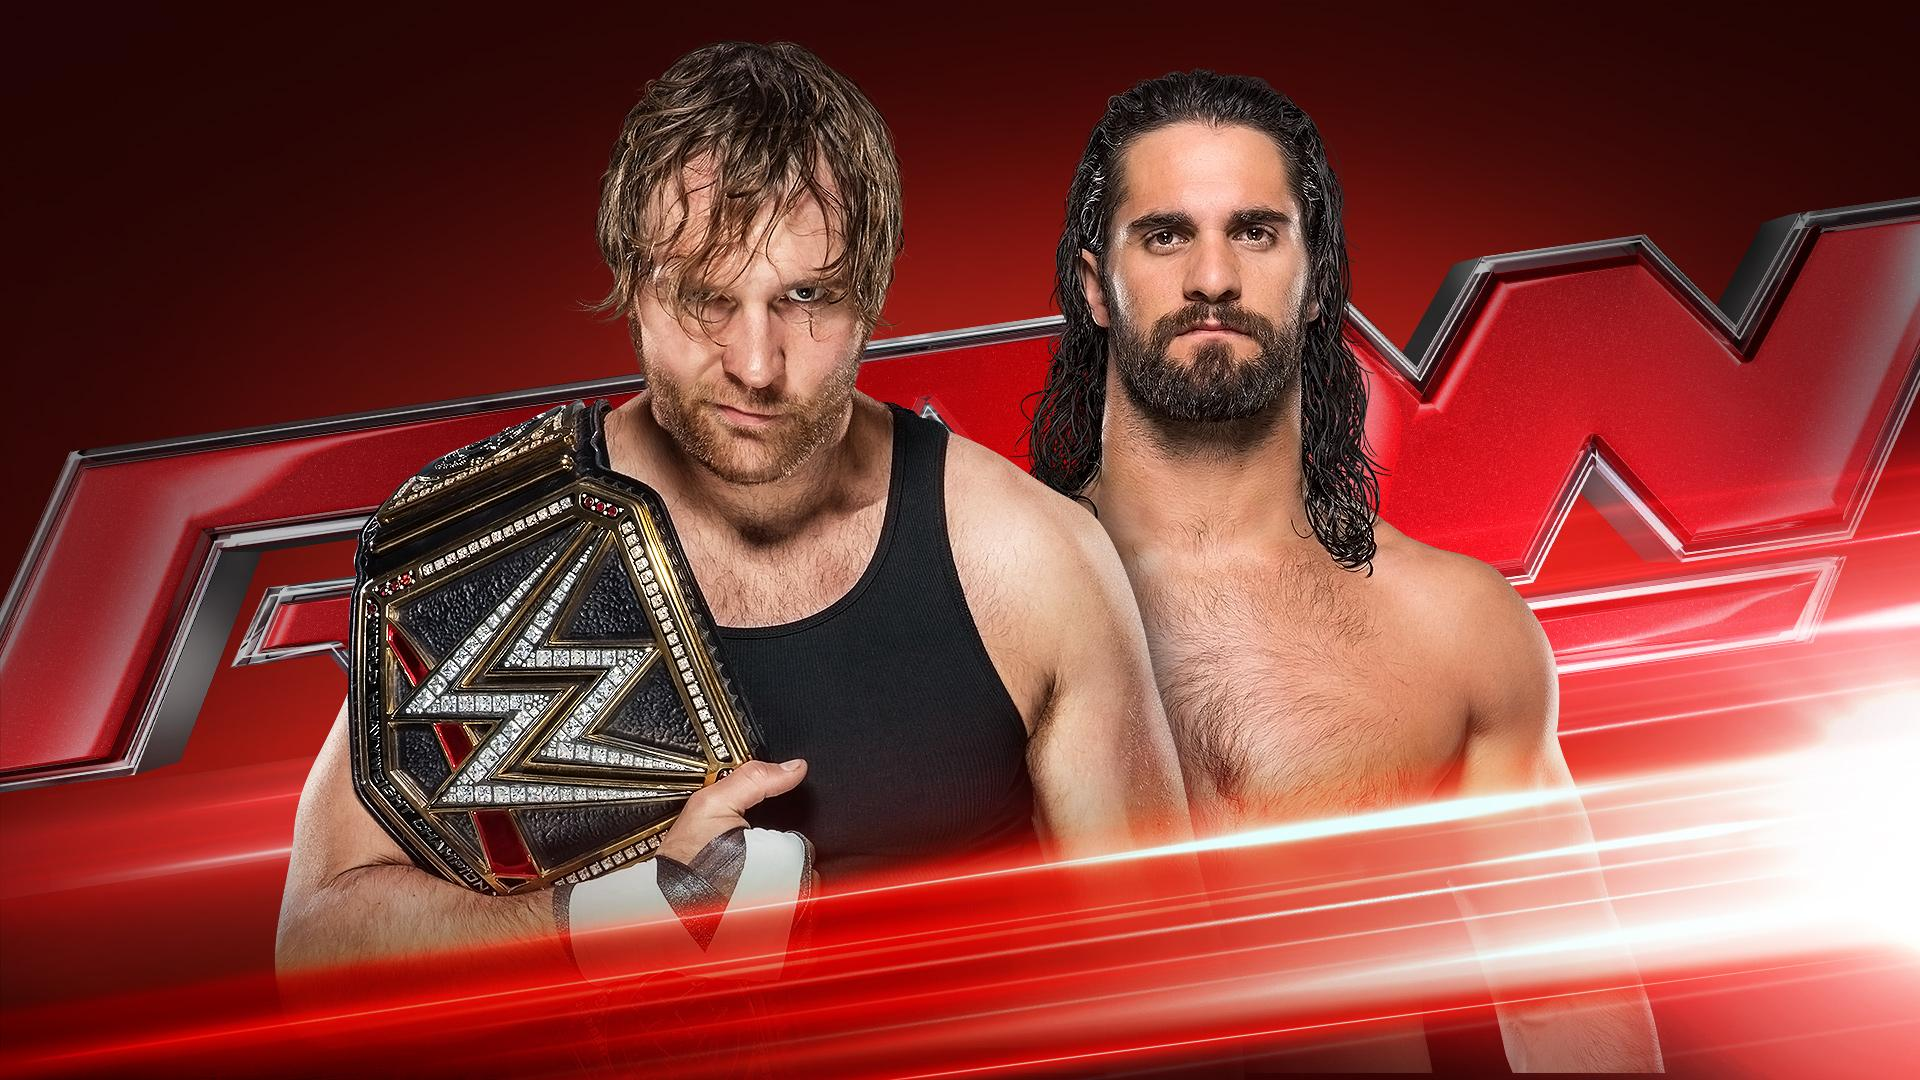 Image result for Dean Ambrose vs. Seth Rollins - Raw July 18th: WWE Championship Match